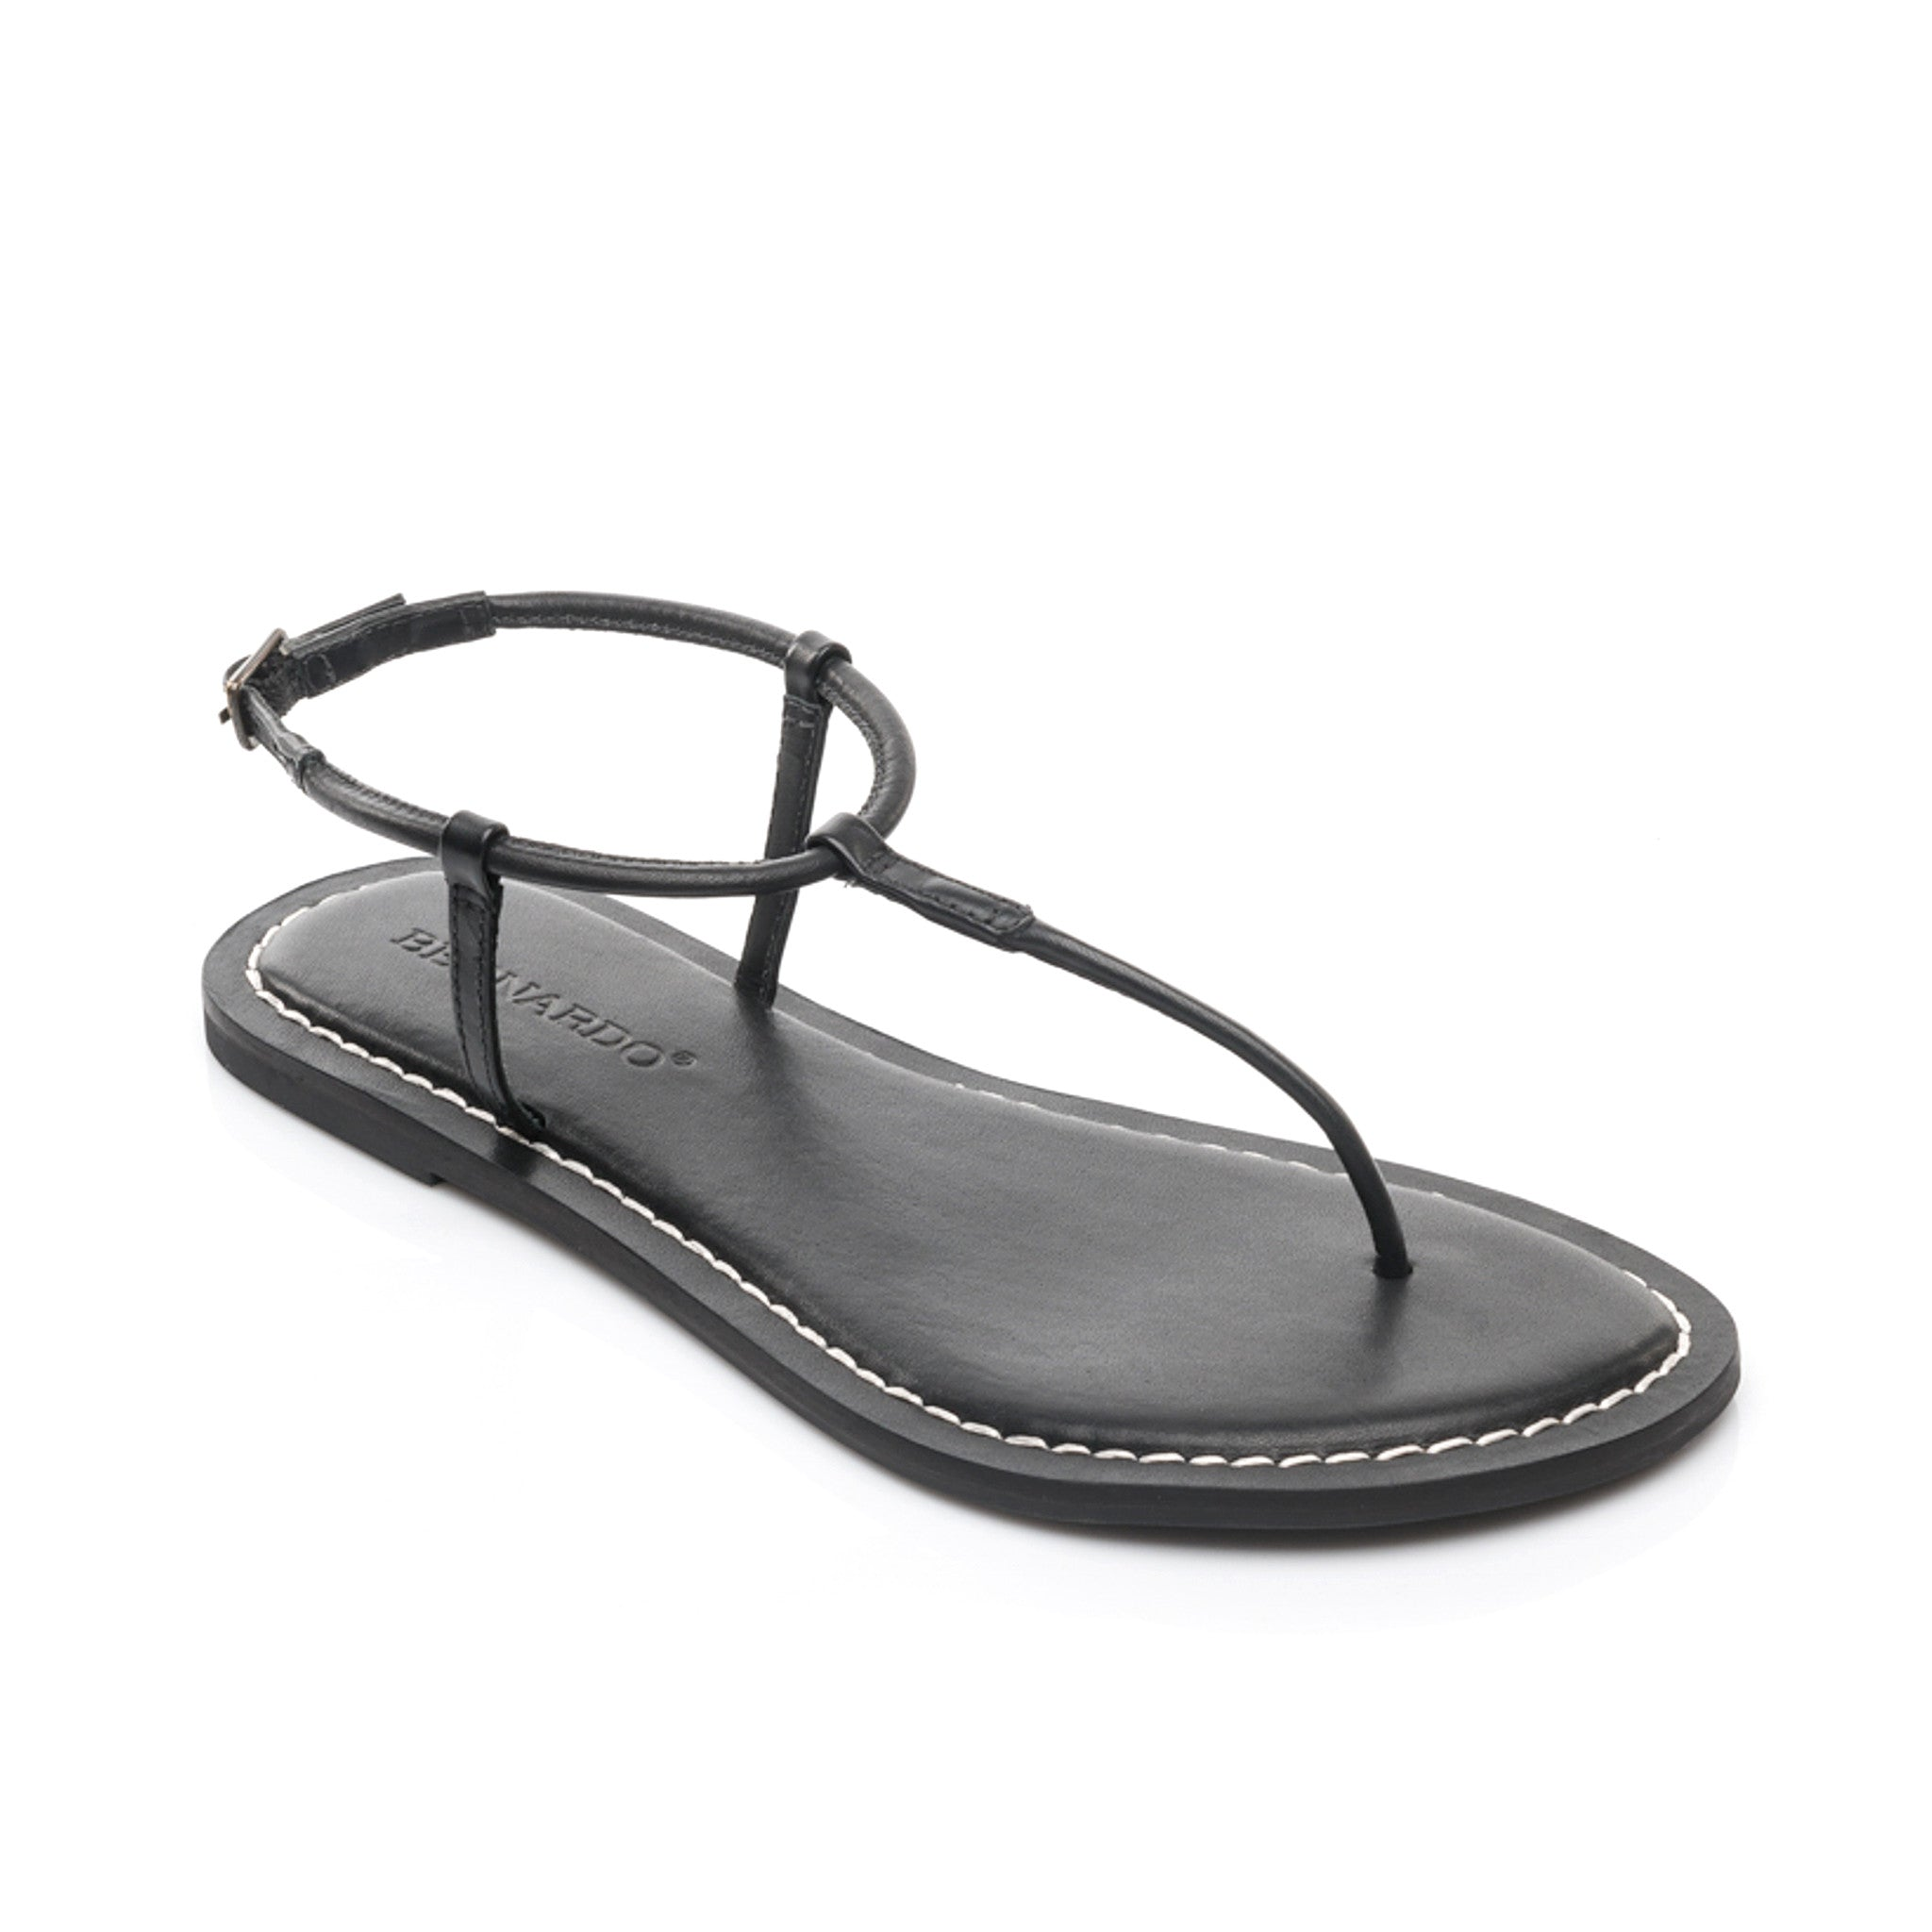 Lilly T-Strap Sandal in Black Leather